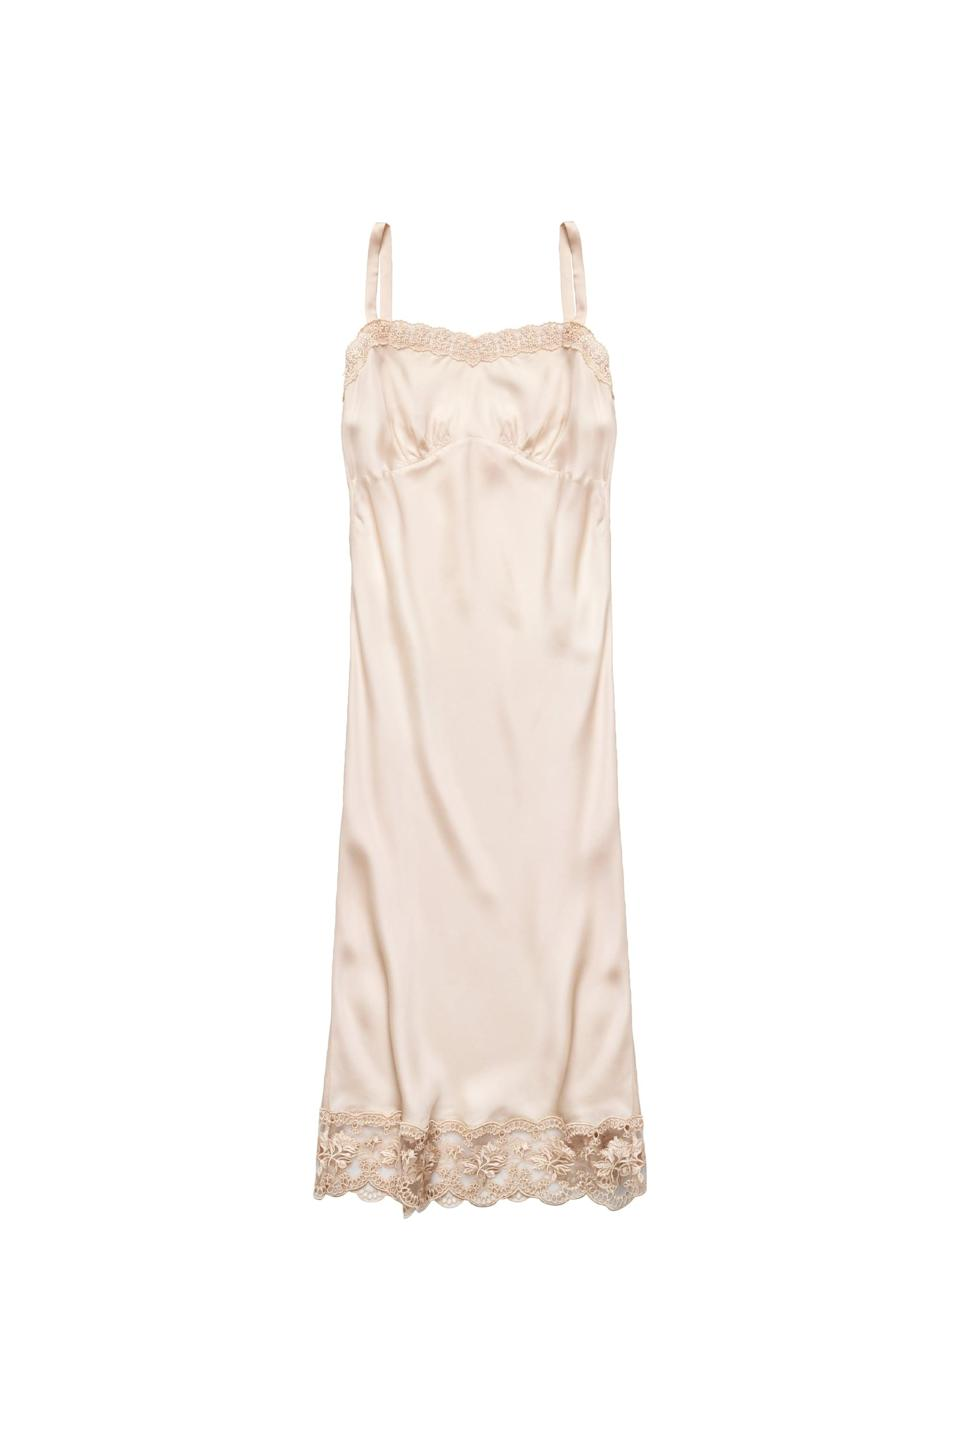 <p><span>Simone Rocha x H&amp;M Satin Slip Dress</span> ($70).</p>